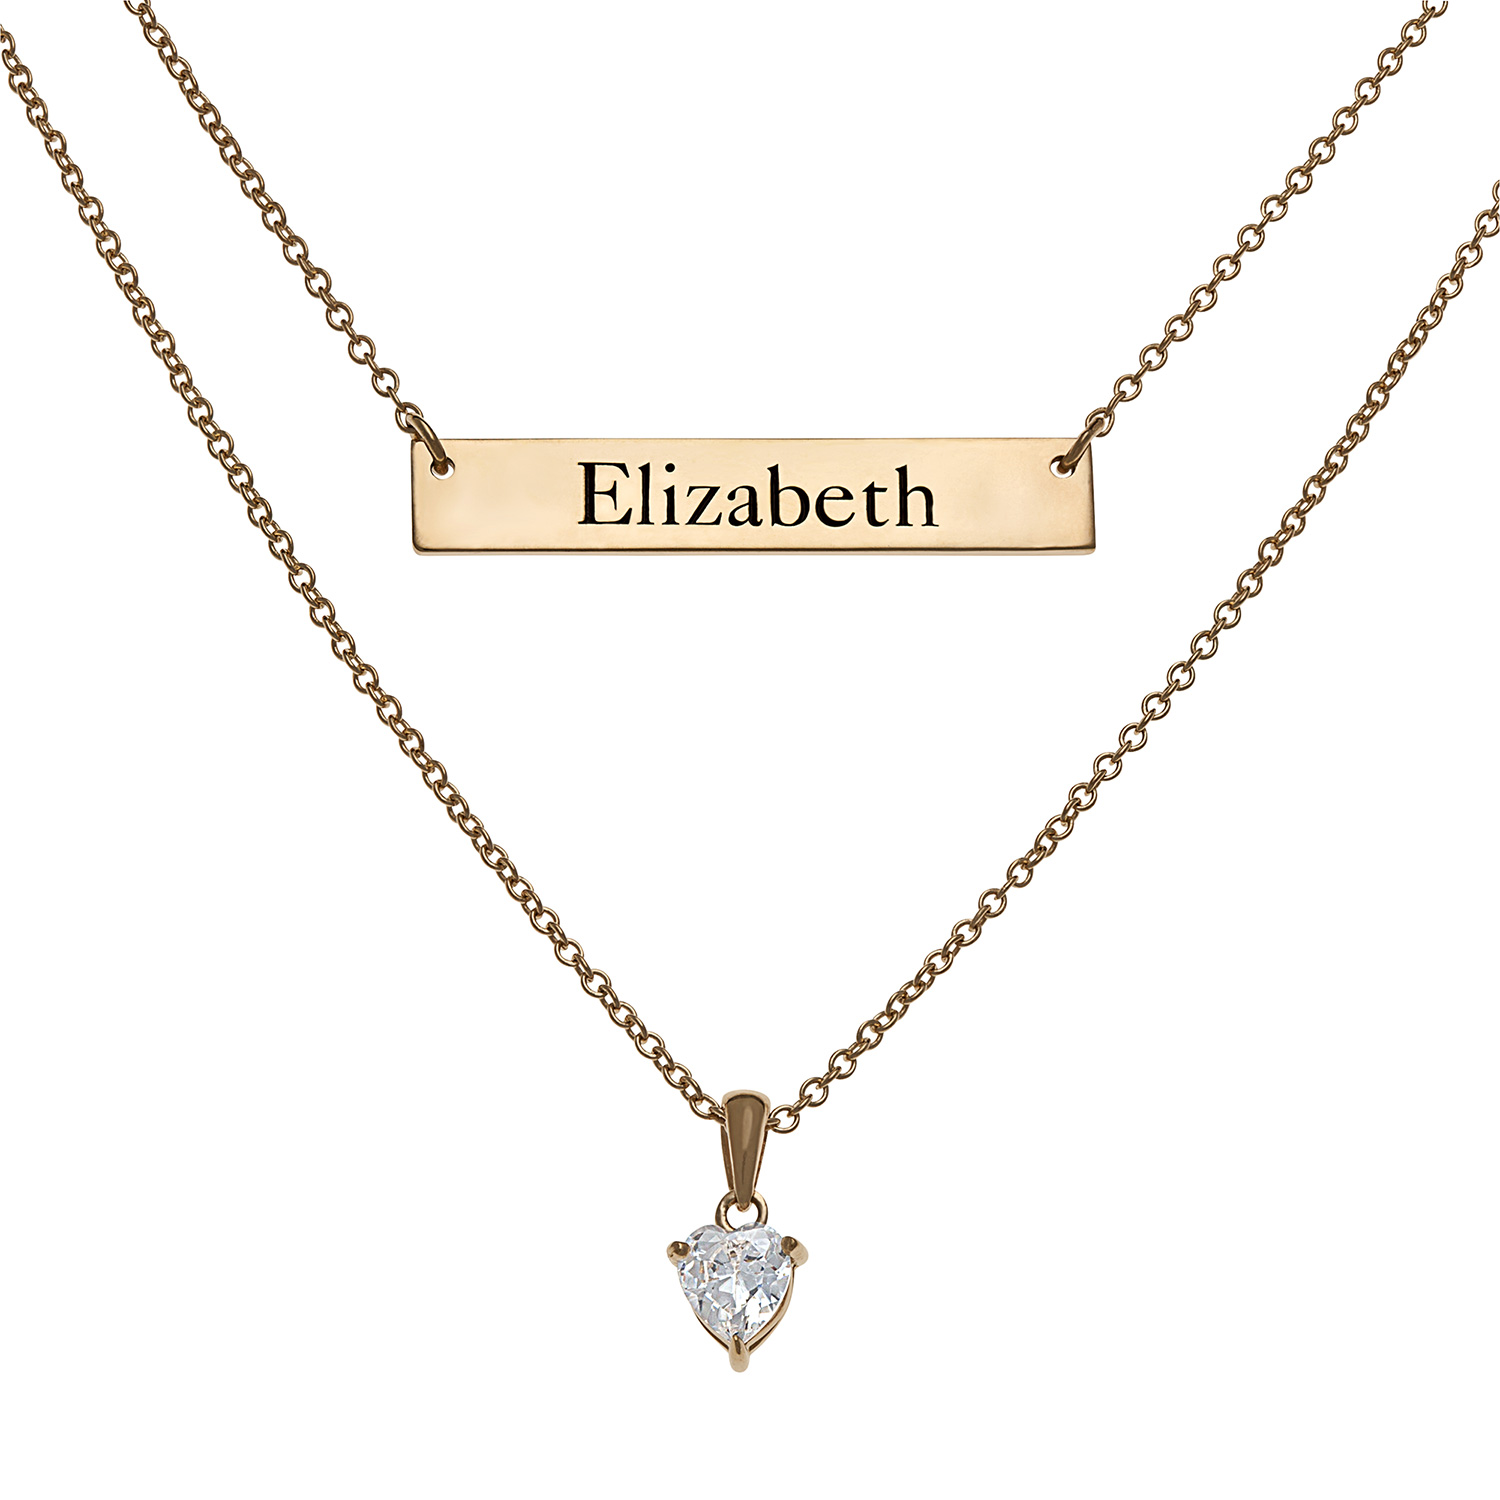 """Personalized Women's Sterling Silver or Gold over Silver Engraved Bar & Birthstone Layered Necklace, 16"""" & 20"""""""